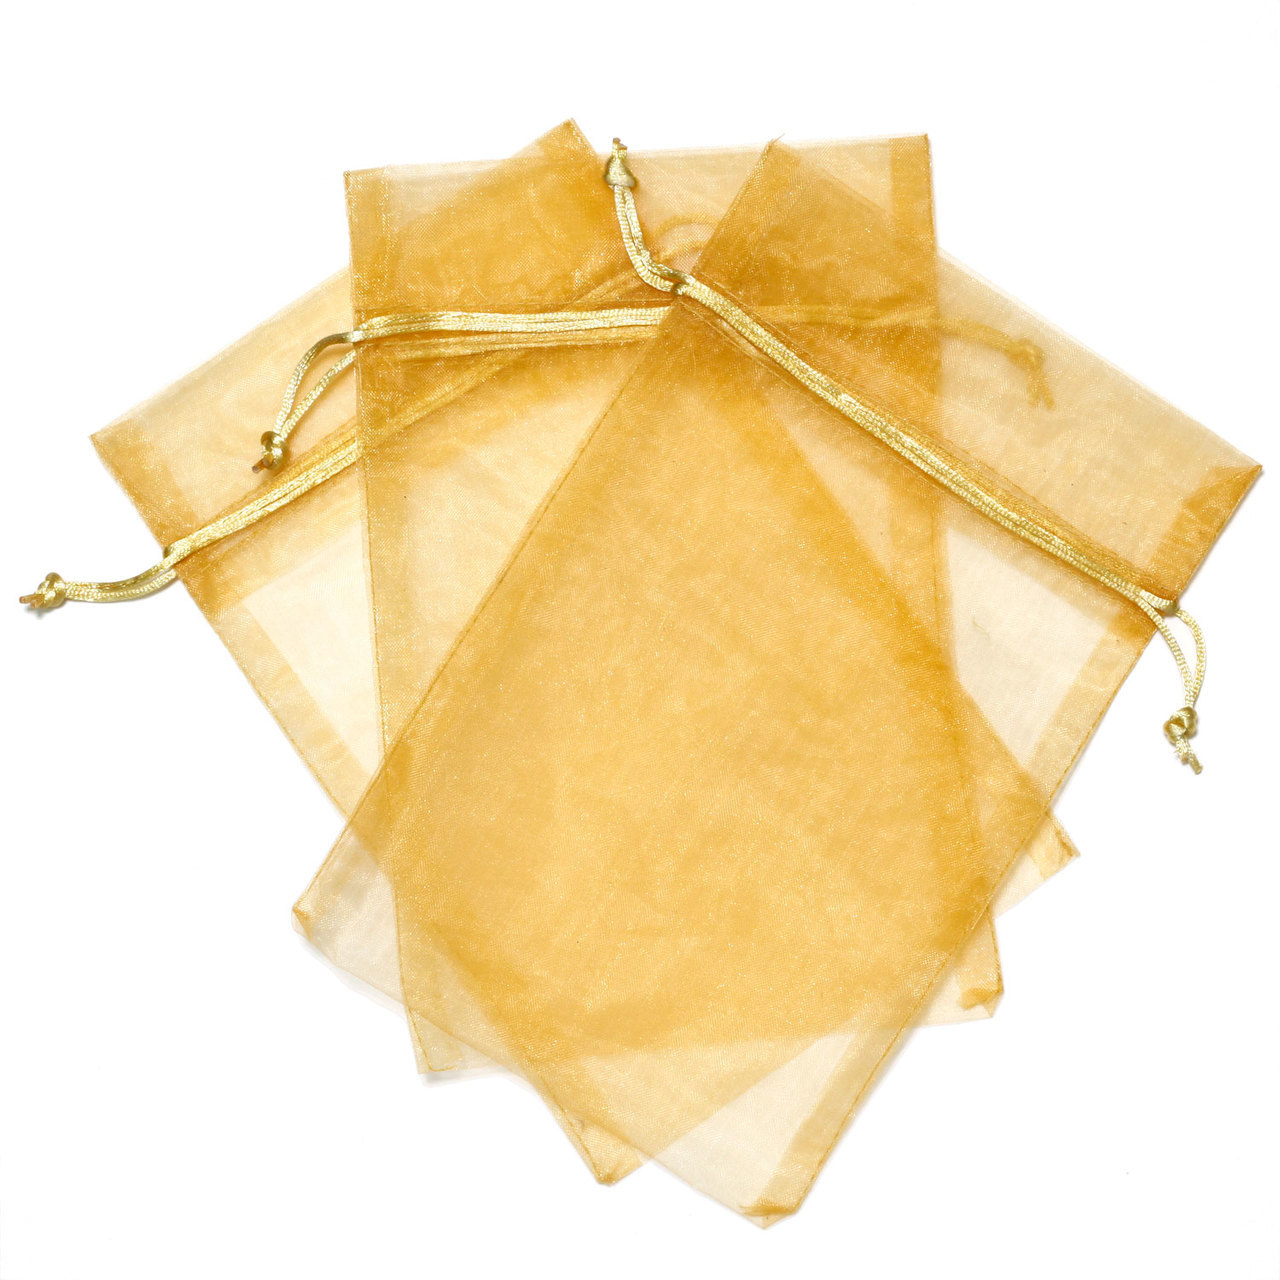 "30 Organza Bags Fabric Gift Party Bags - 5.5"" By 9"""